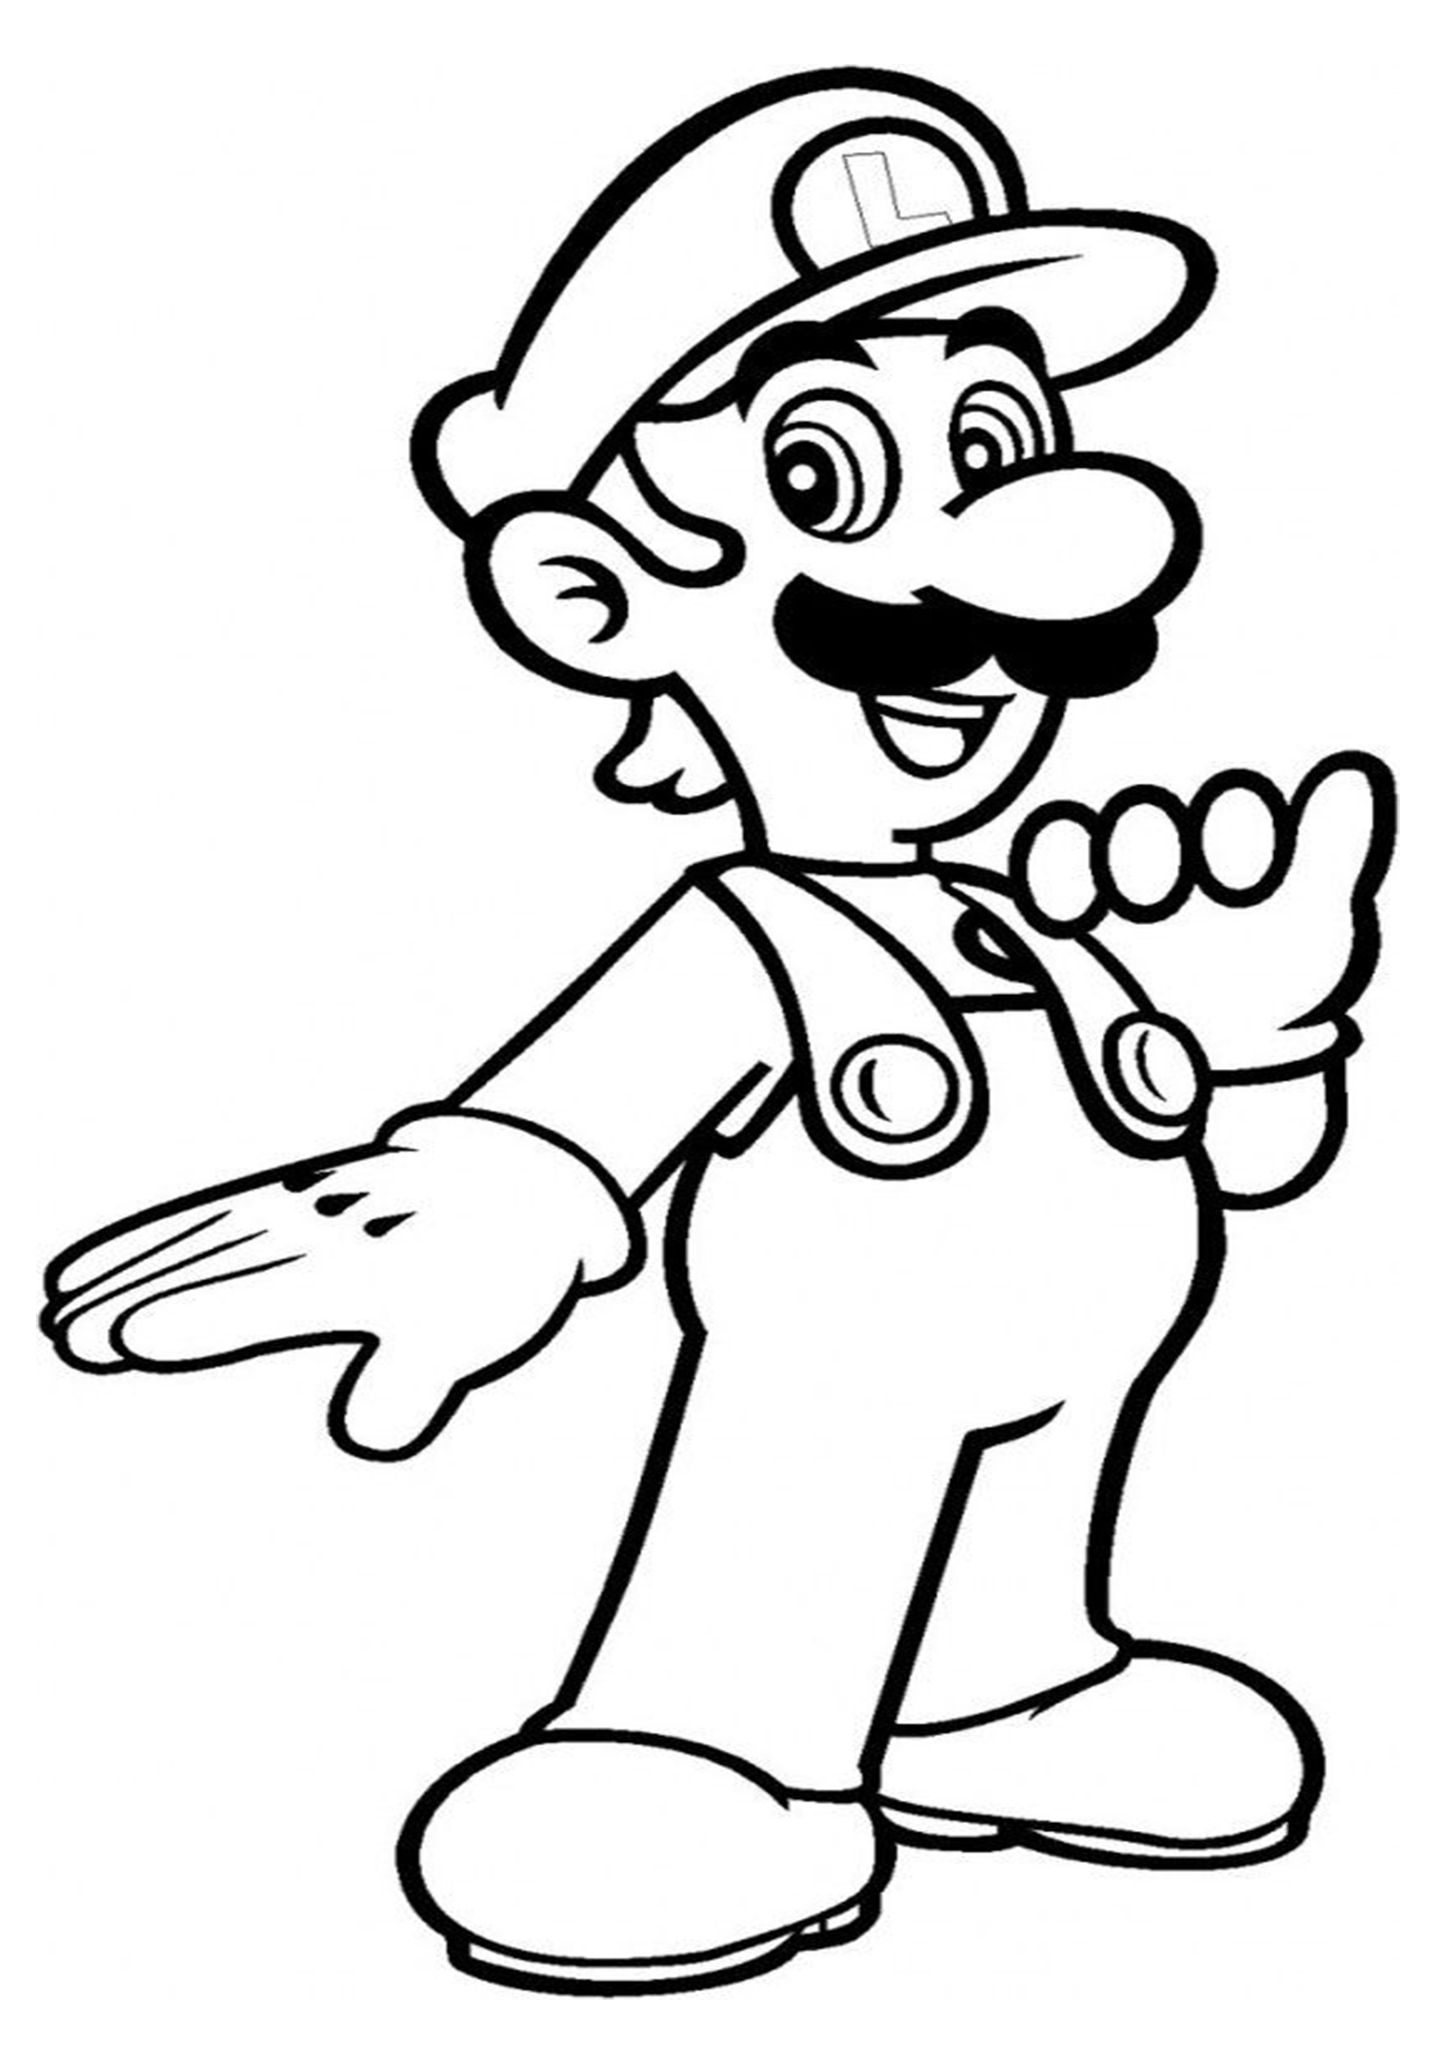 Free Amp Easy To Print Mario Coloring Page In